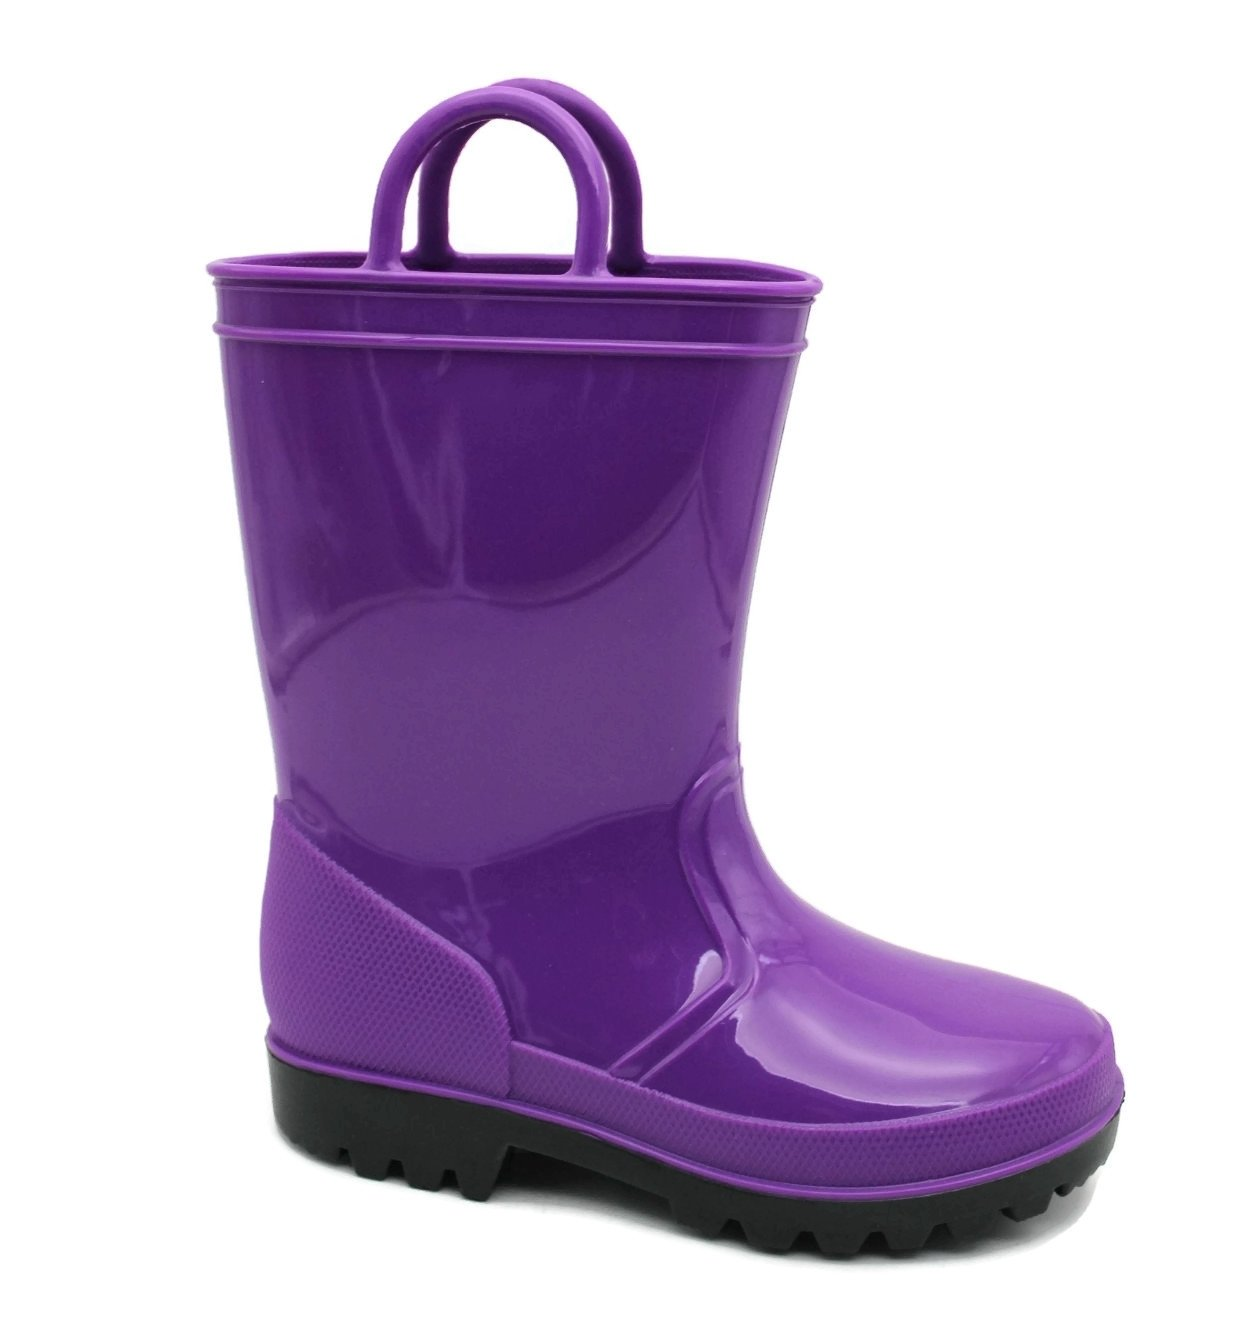 Free shipping BOTH ways on girls big kids rain boots, from our vast selection of styles. Fast delivery, and 24/7/ real-person service with a smile. Click or call